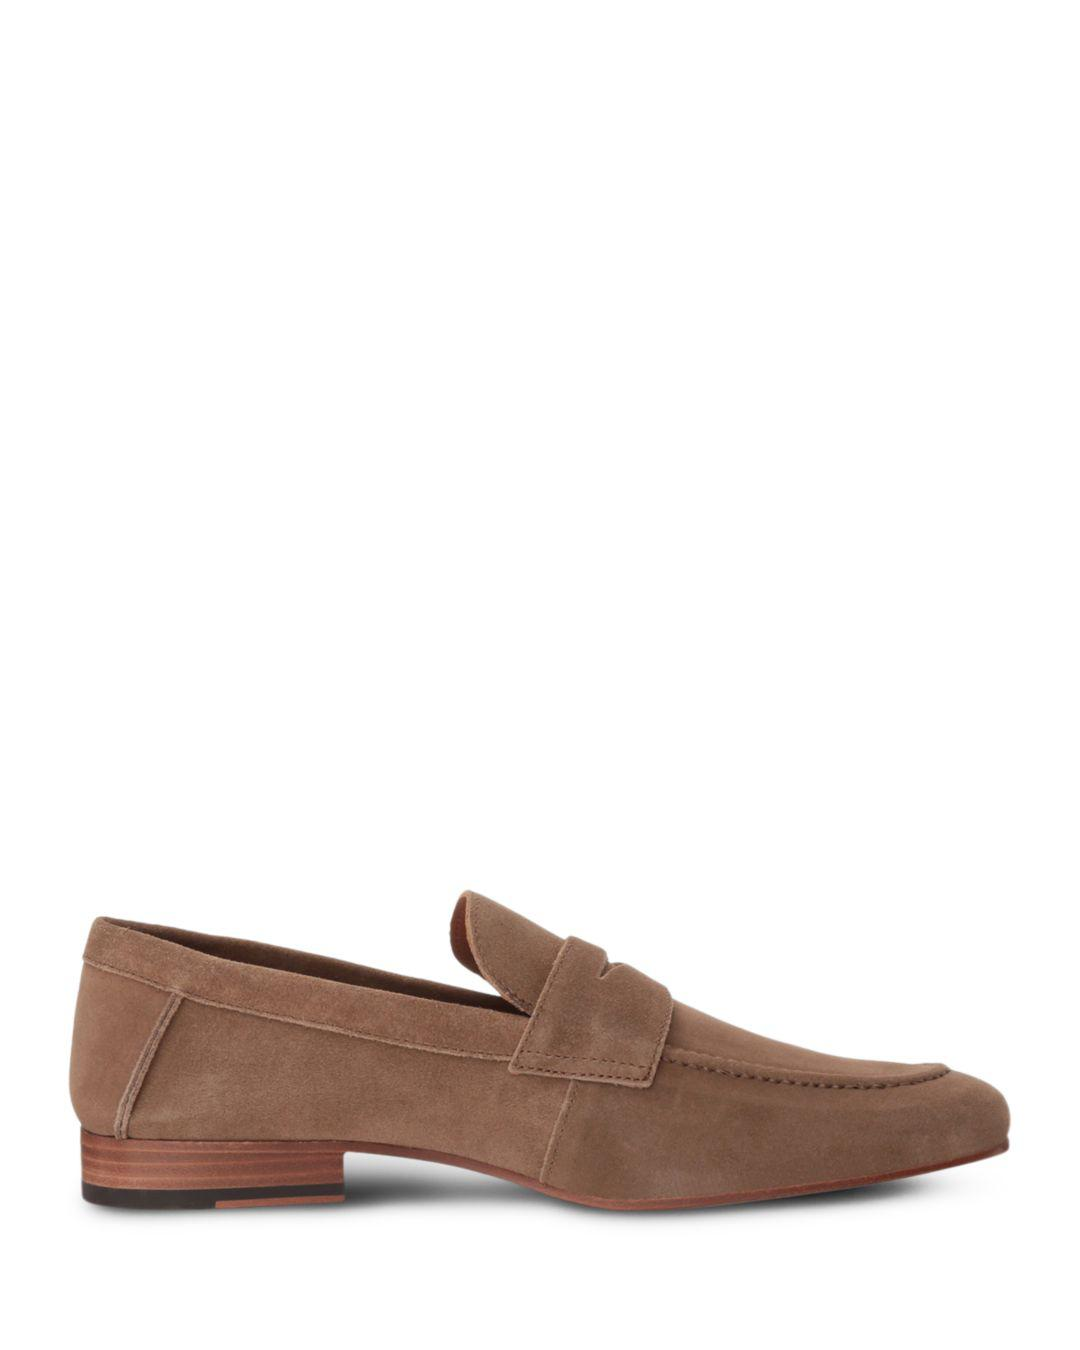 2c673261f20 Gordon Rush Men s Wilfred Suede Apron Toe Penny Loafers in Brown for ...